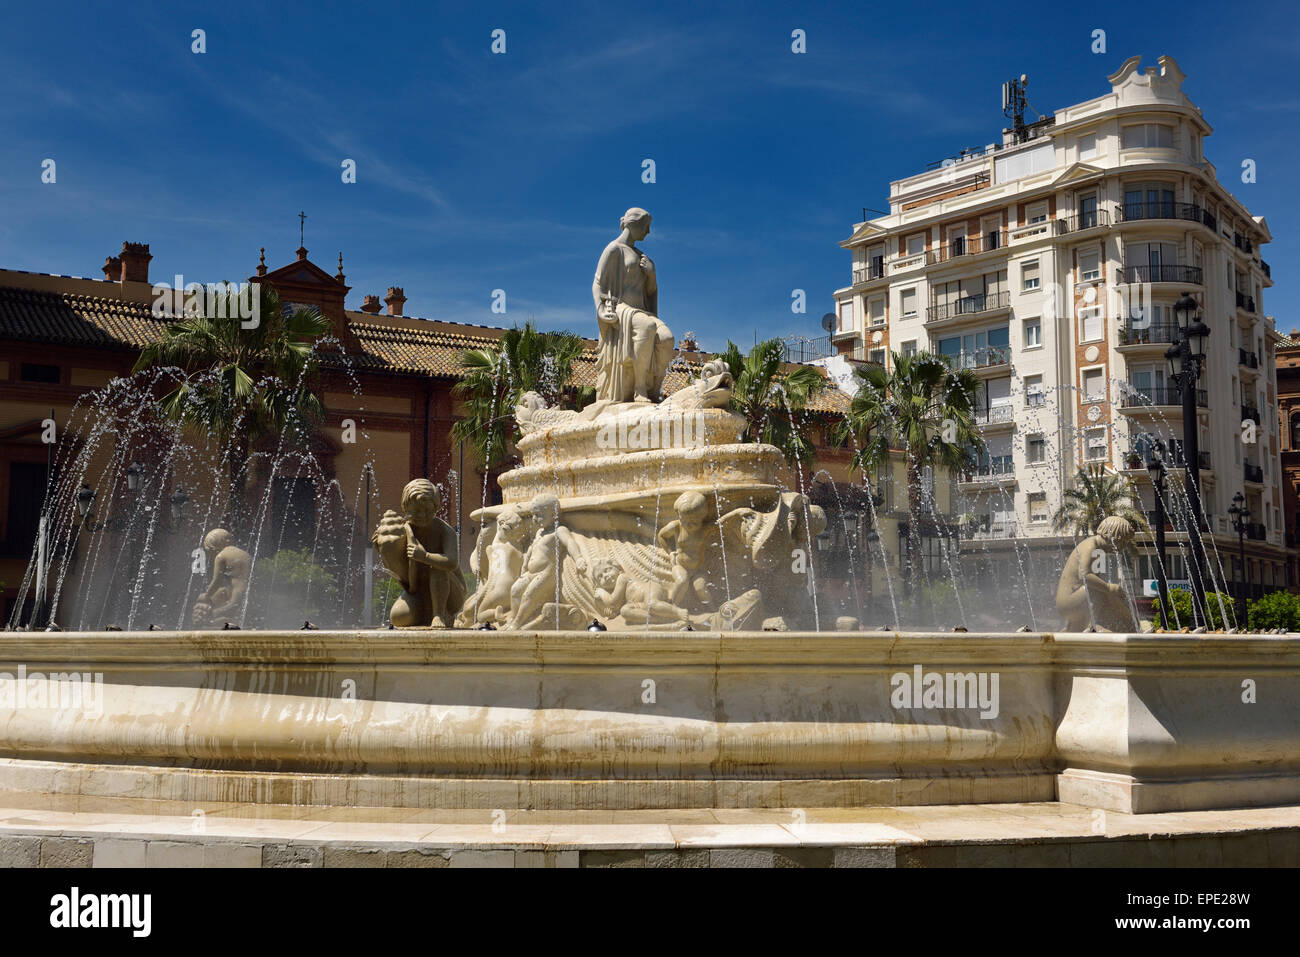 The water Fountain of Hispalis with nereid sea nymphs at Puerto de Jerez roundabout in Seville Spain - Stock Image